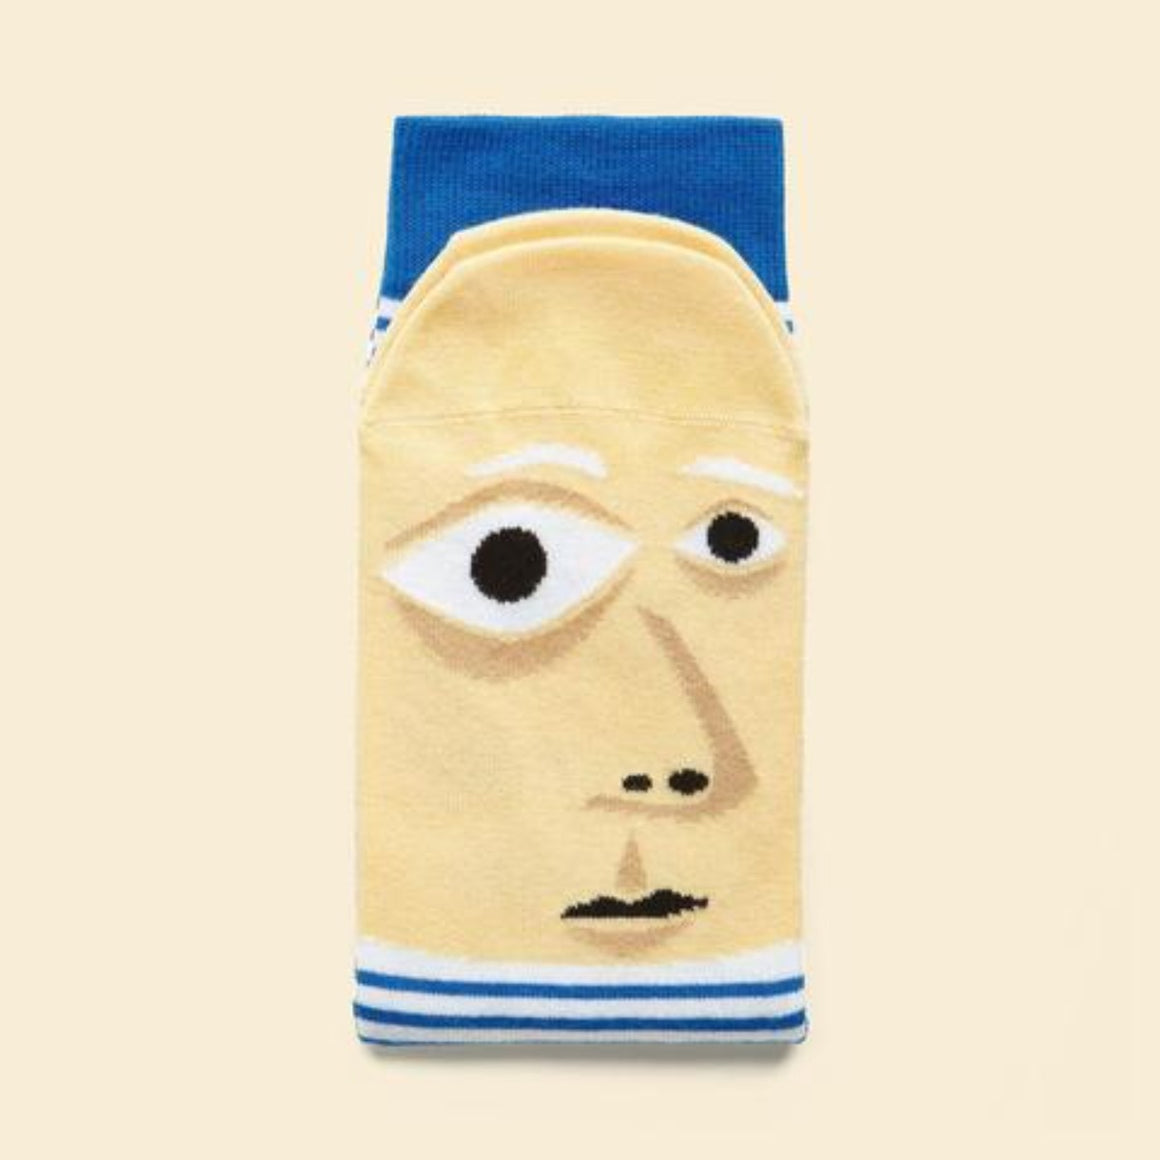 Image of a pair of socks which feature a graphic illustration of Pablo Picasso